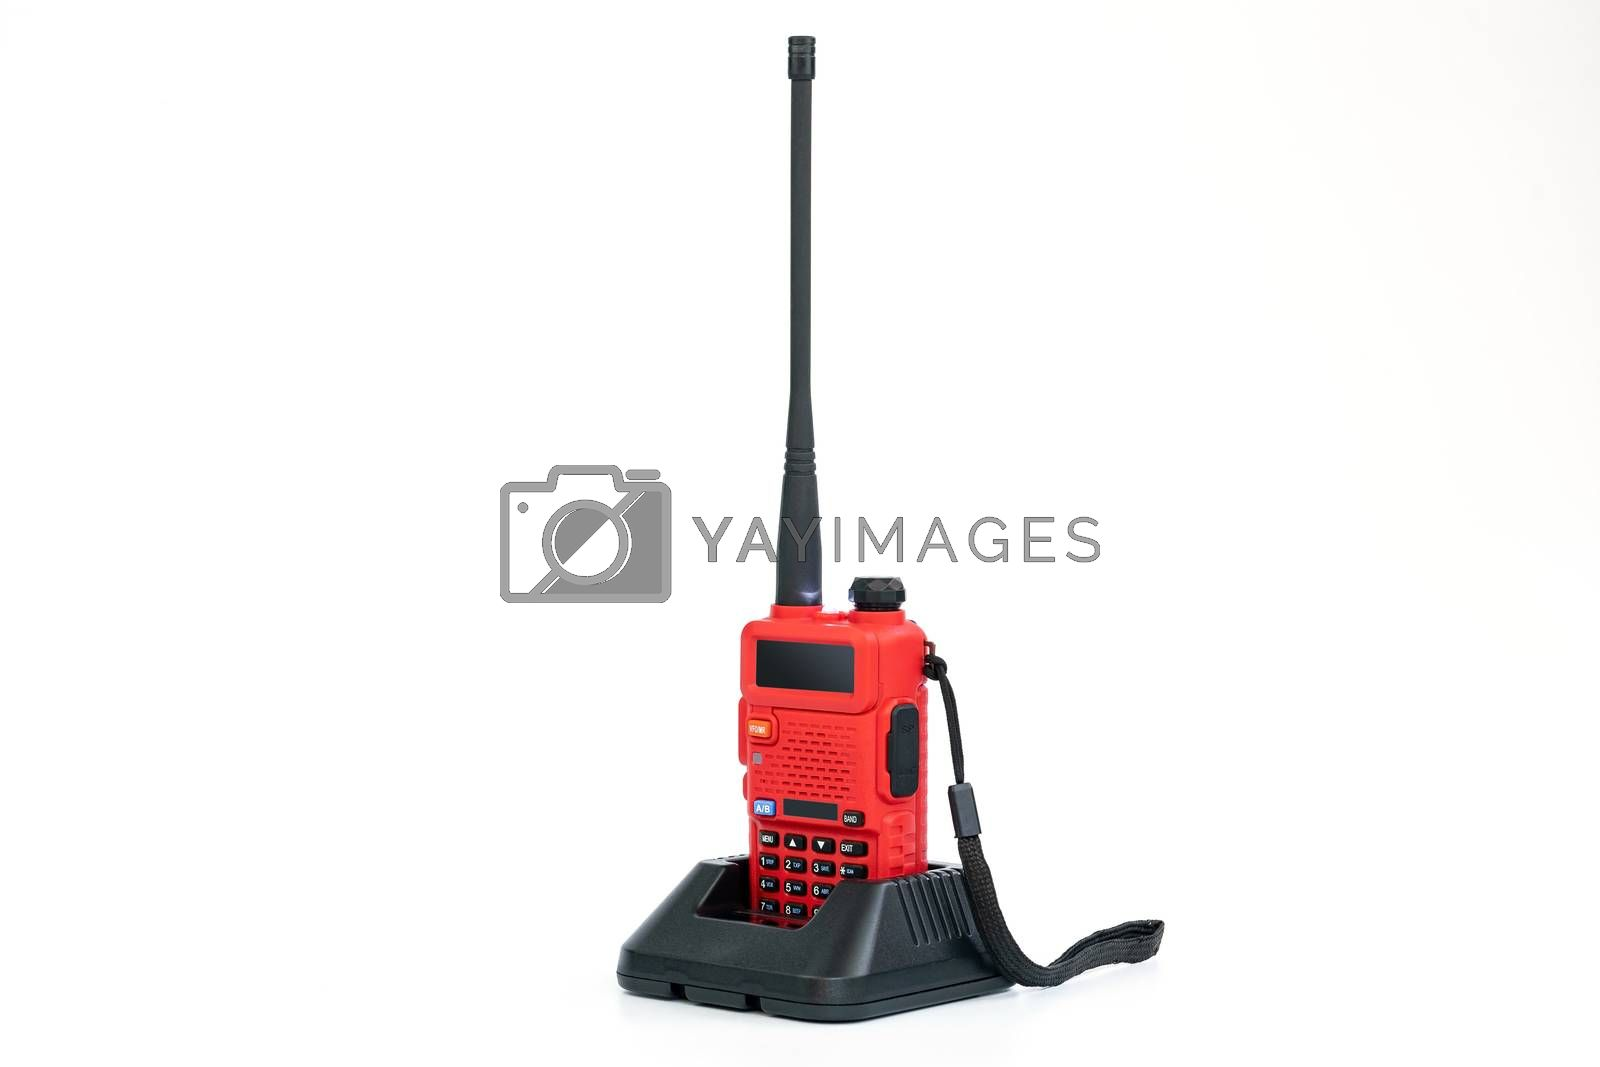 Radio communication for general use in various industries such as Security, construction and remote communications isolated on white background.